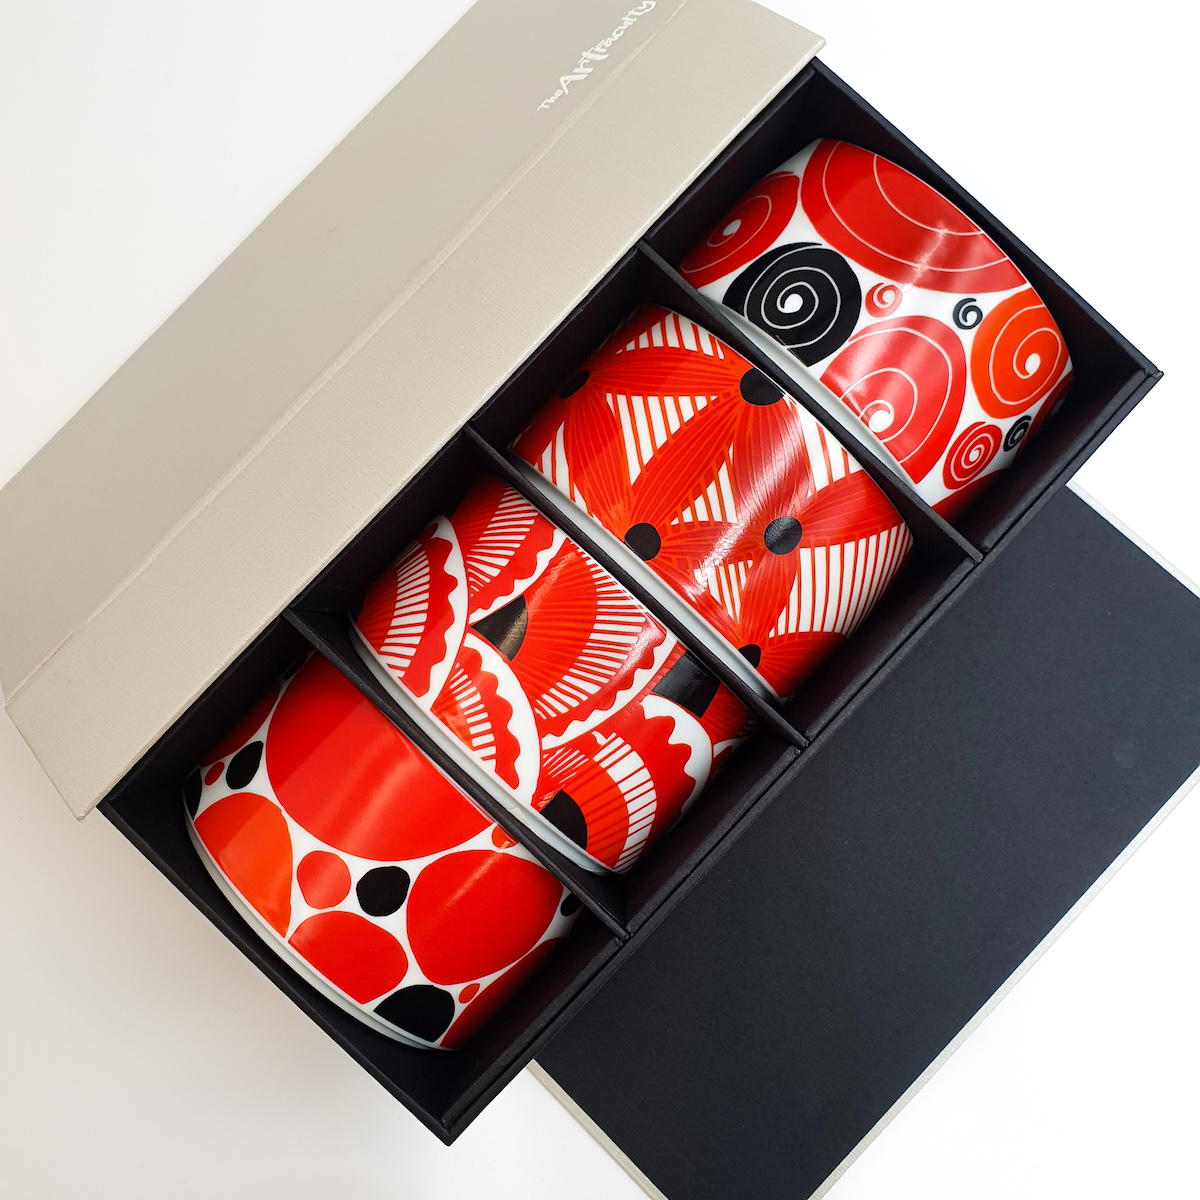 Scandi RED Dessert Bowls Gift Set of 4